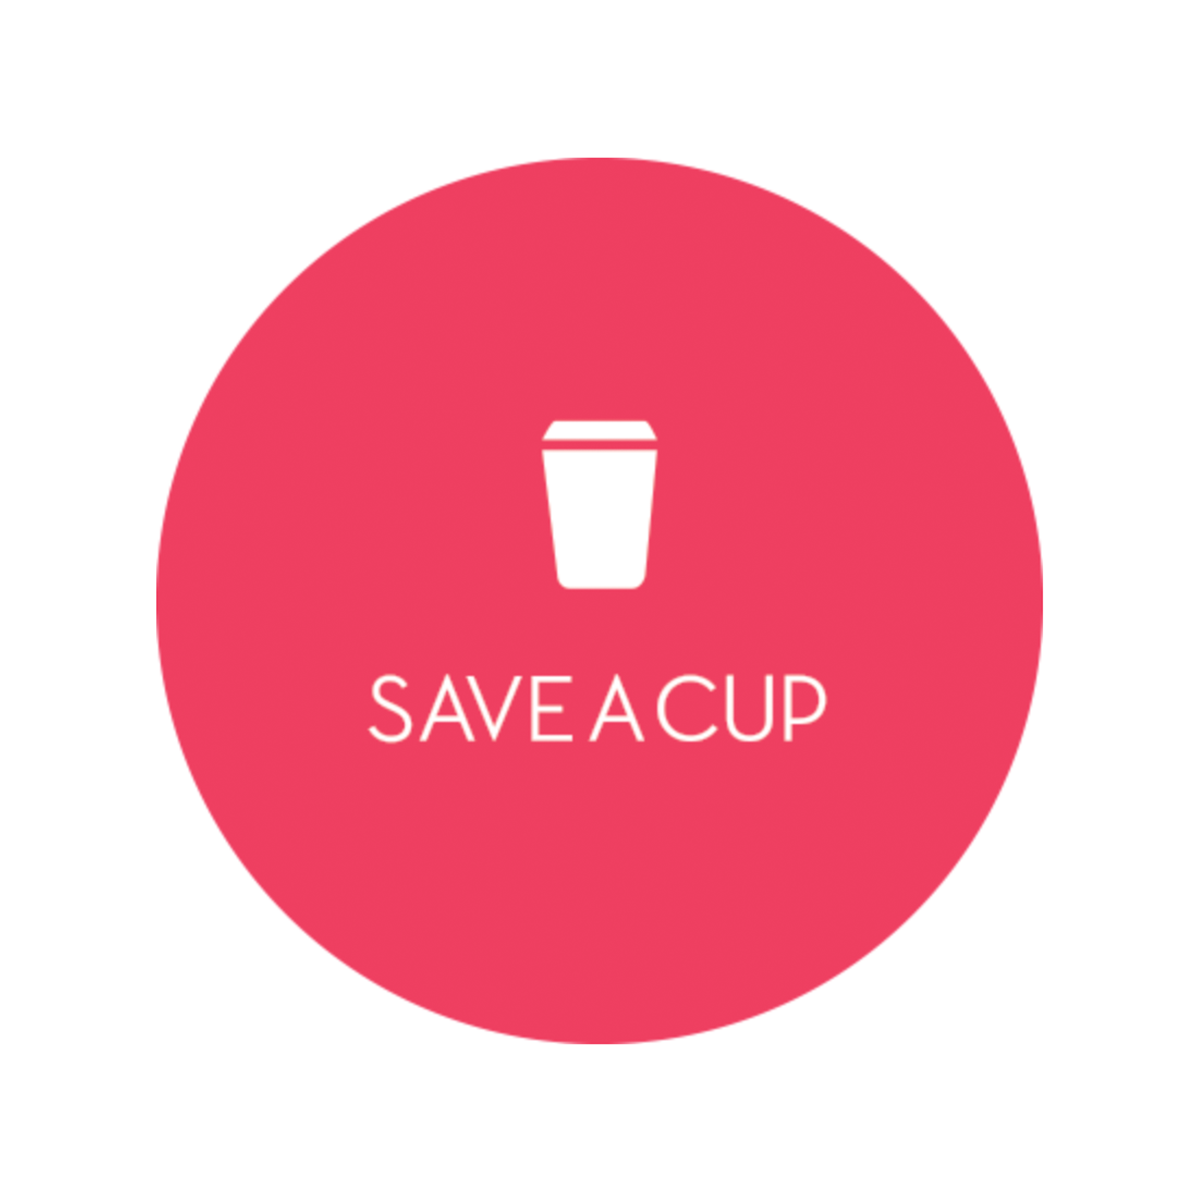 Saveacup Help Center home page